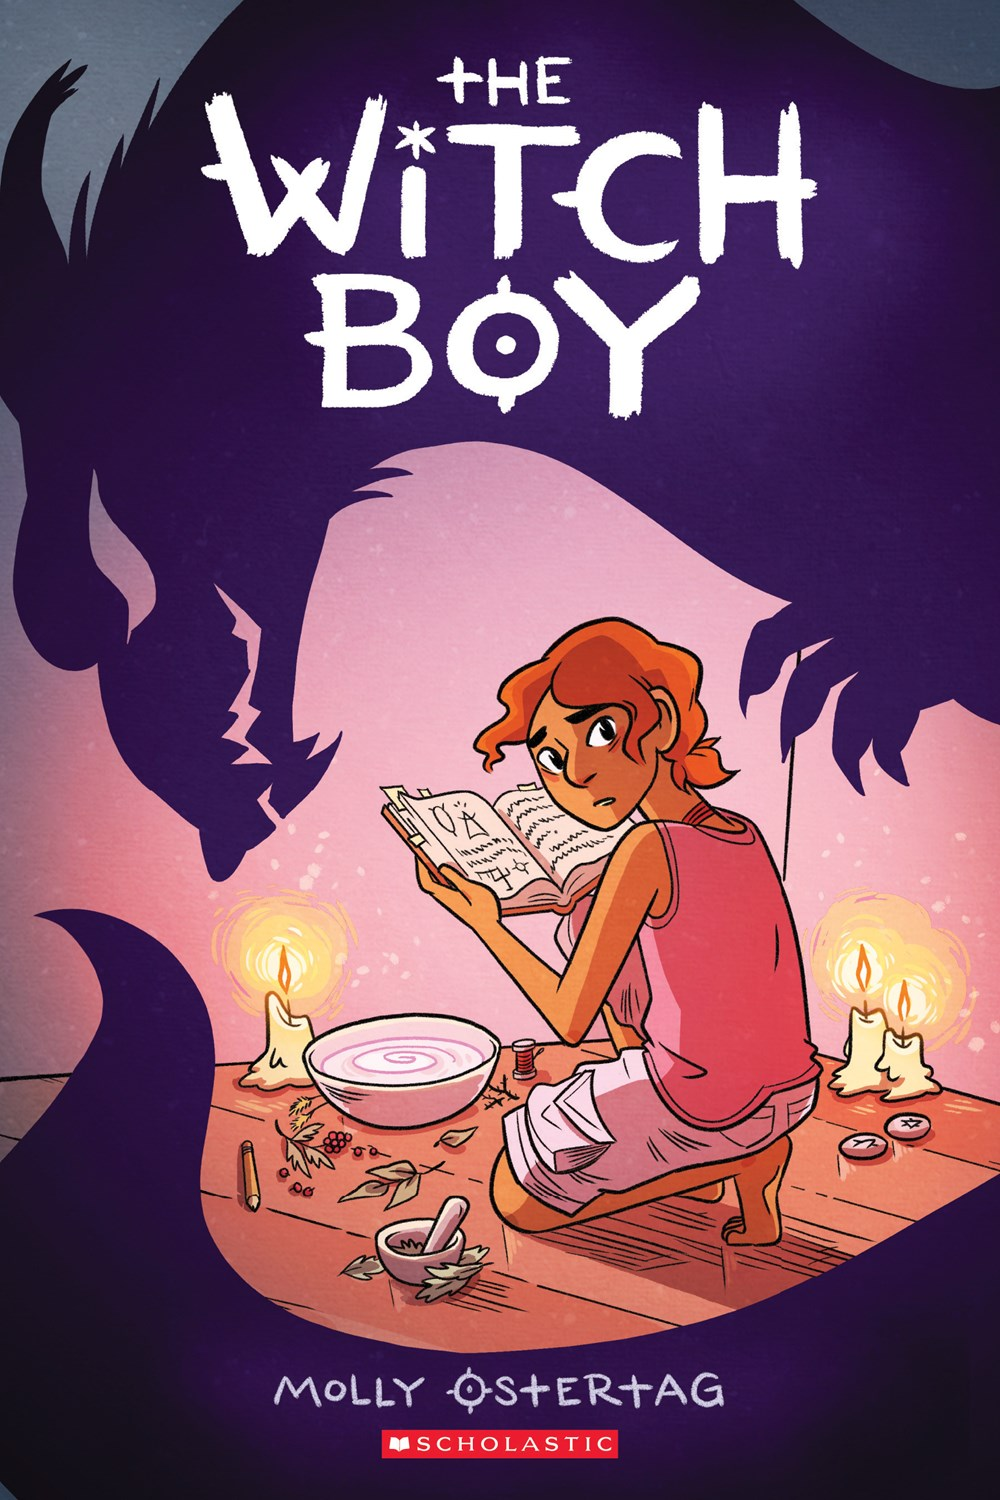 THE WITCH BOY by Molly Ostertag (Scholastic, Oct. 2017)